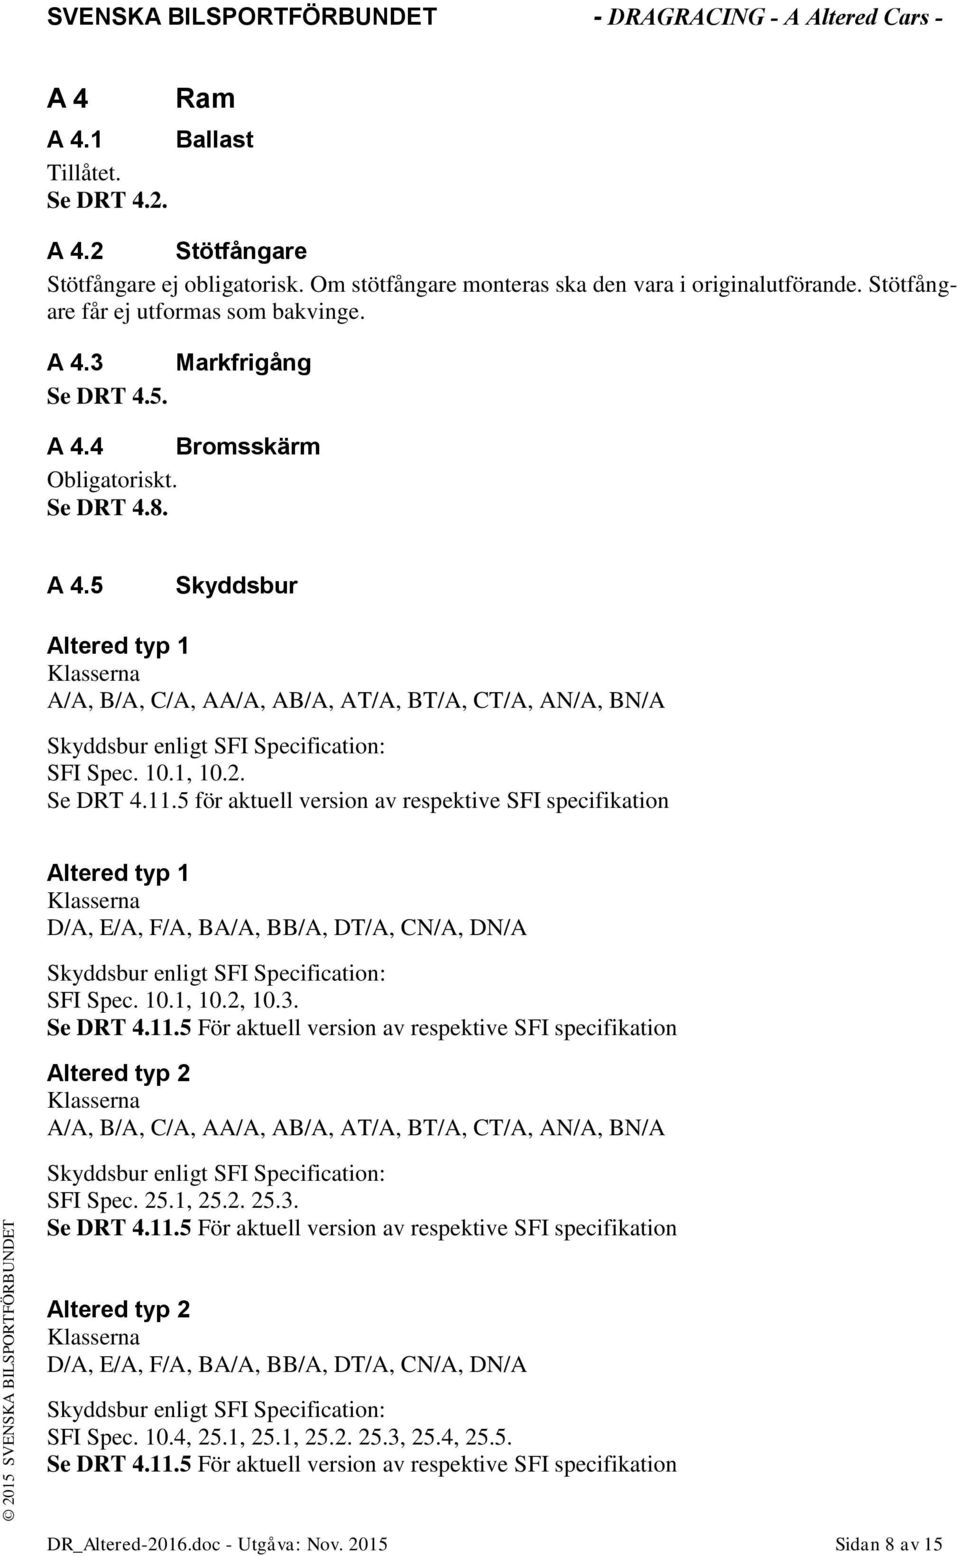 Se DRT 4.11.5 för aktuell version av respektive SFI specifikation Altered typ 1 Klasserna D/A, E/A, F/A, BA/A, BB/A, DT/A, CN/A, DN/A Skyddsbur enligt SFI Specification: SFI Spec. 10.1, 10.2, 10.3.